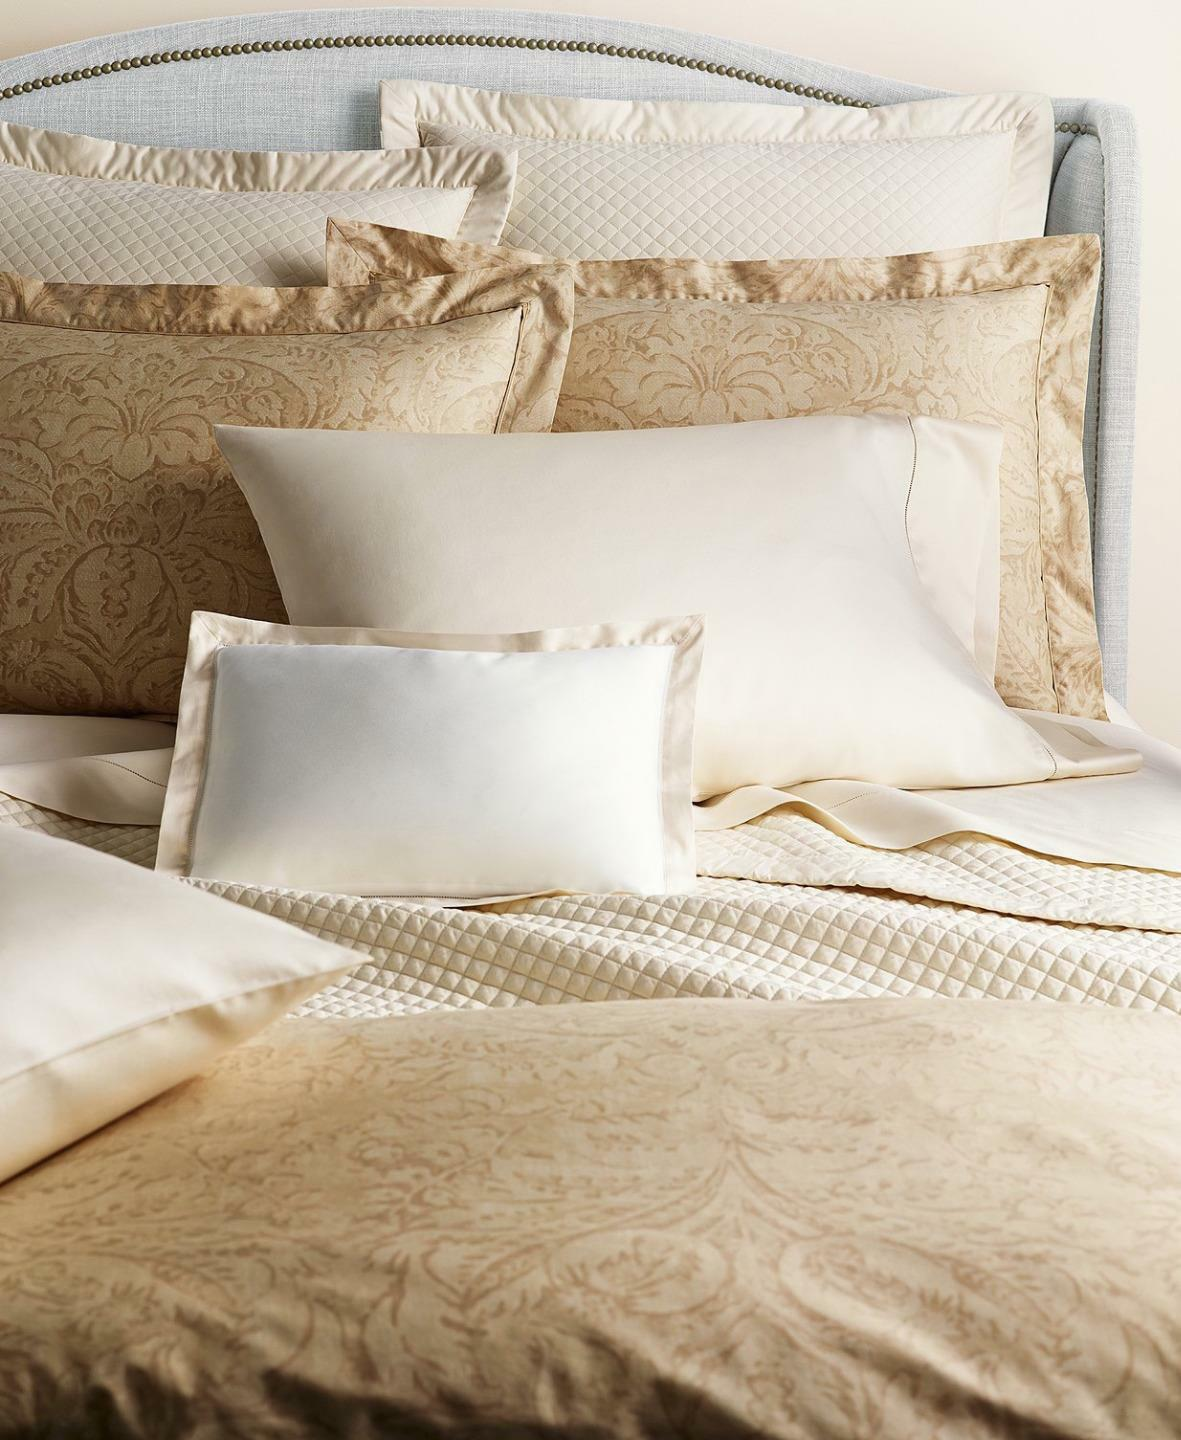 355 Ralph Lauren Full Queen Duvet Comforter Cover Fleur